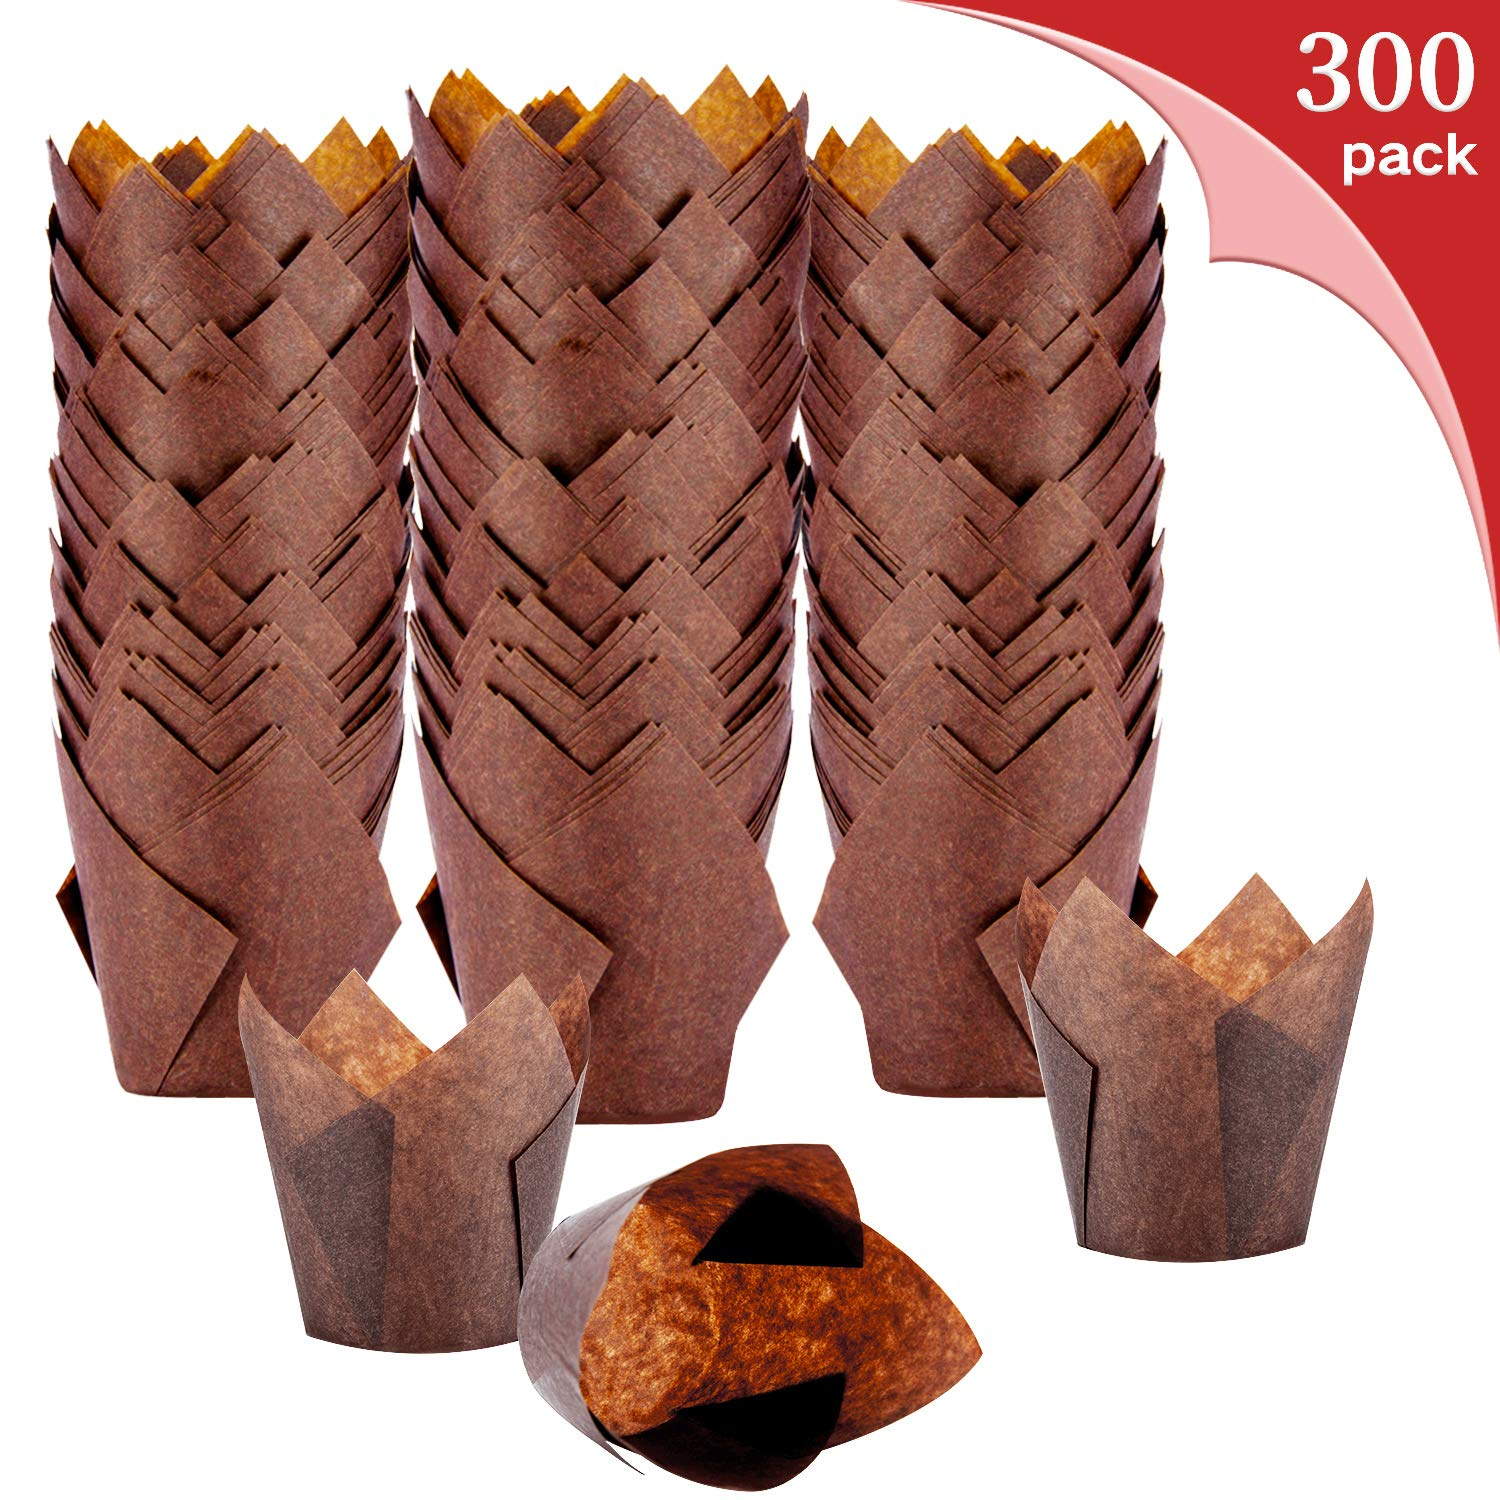 Tulip Cupcake Liners - 300-Pack Medium Baking Cups, Muffin Wrappers, Perfect for Birthday Parties, Weddings, Baby Showers, Bakeries, Catering, Restaurants. (Brown) by XP-Art